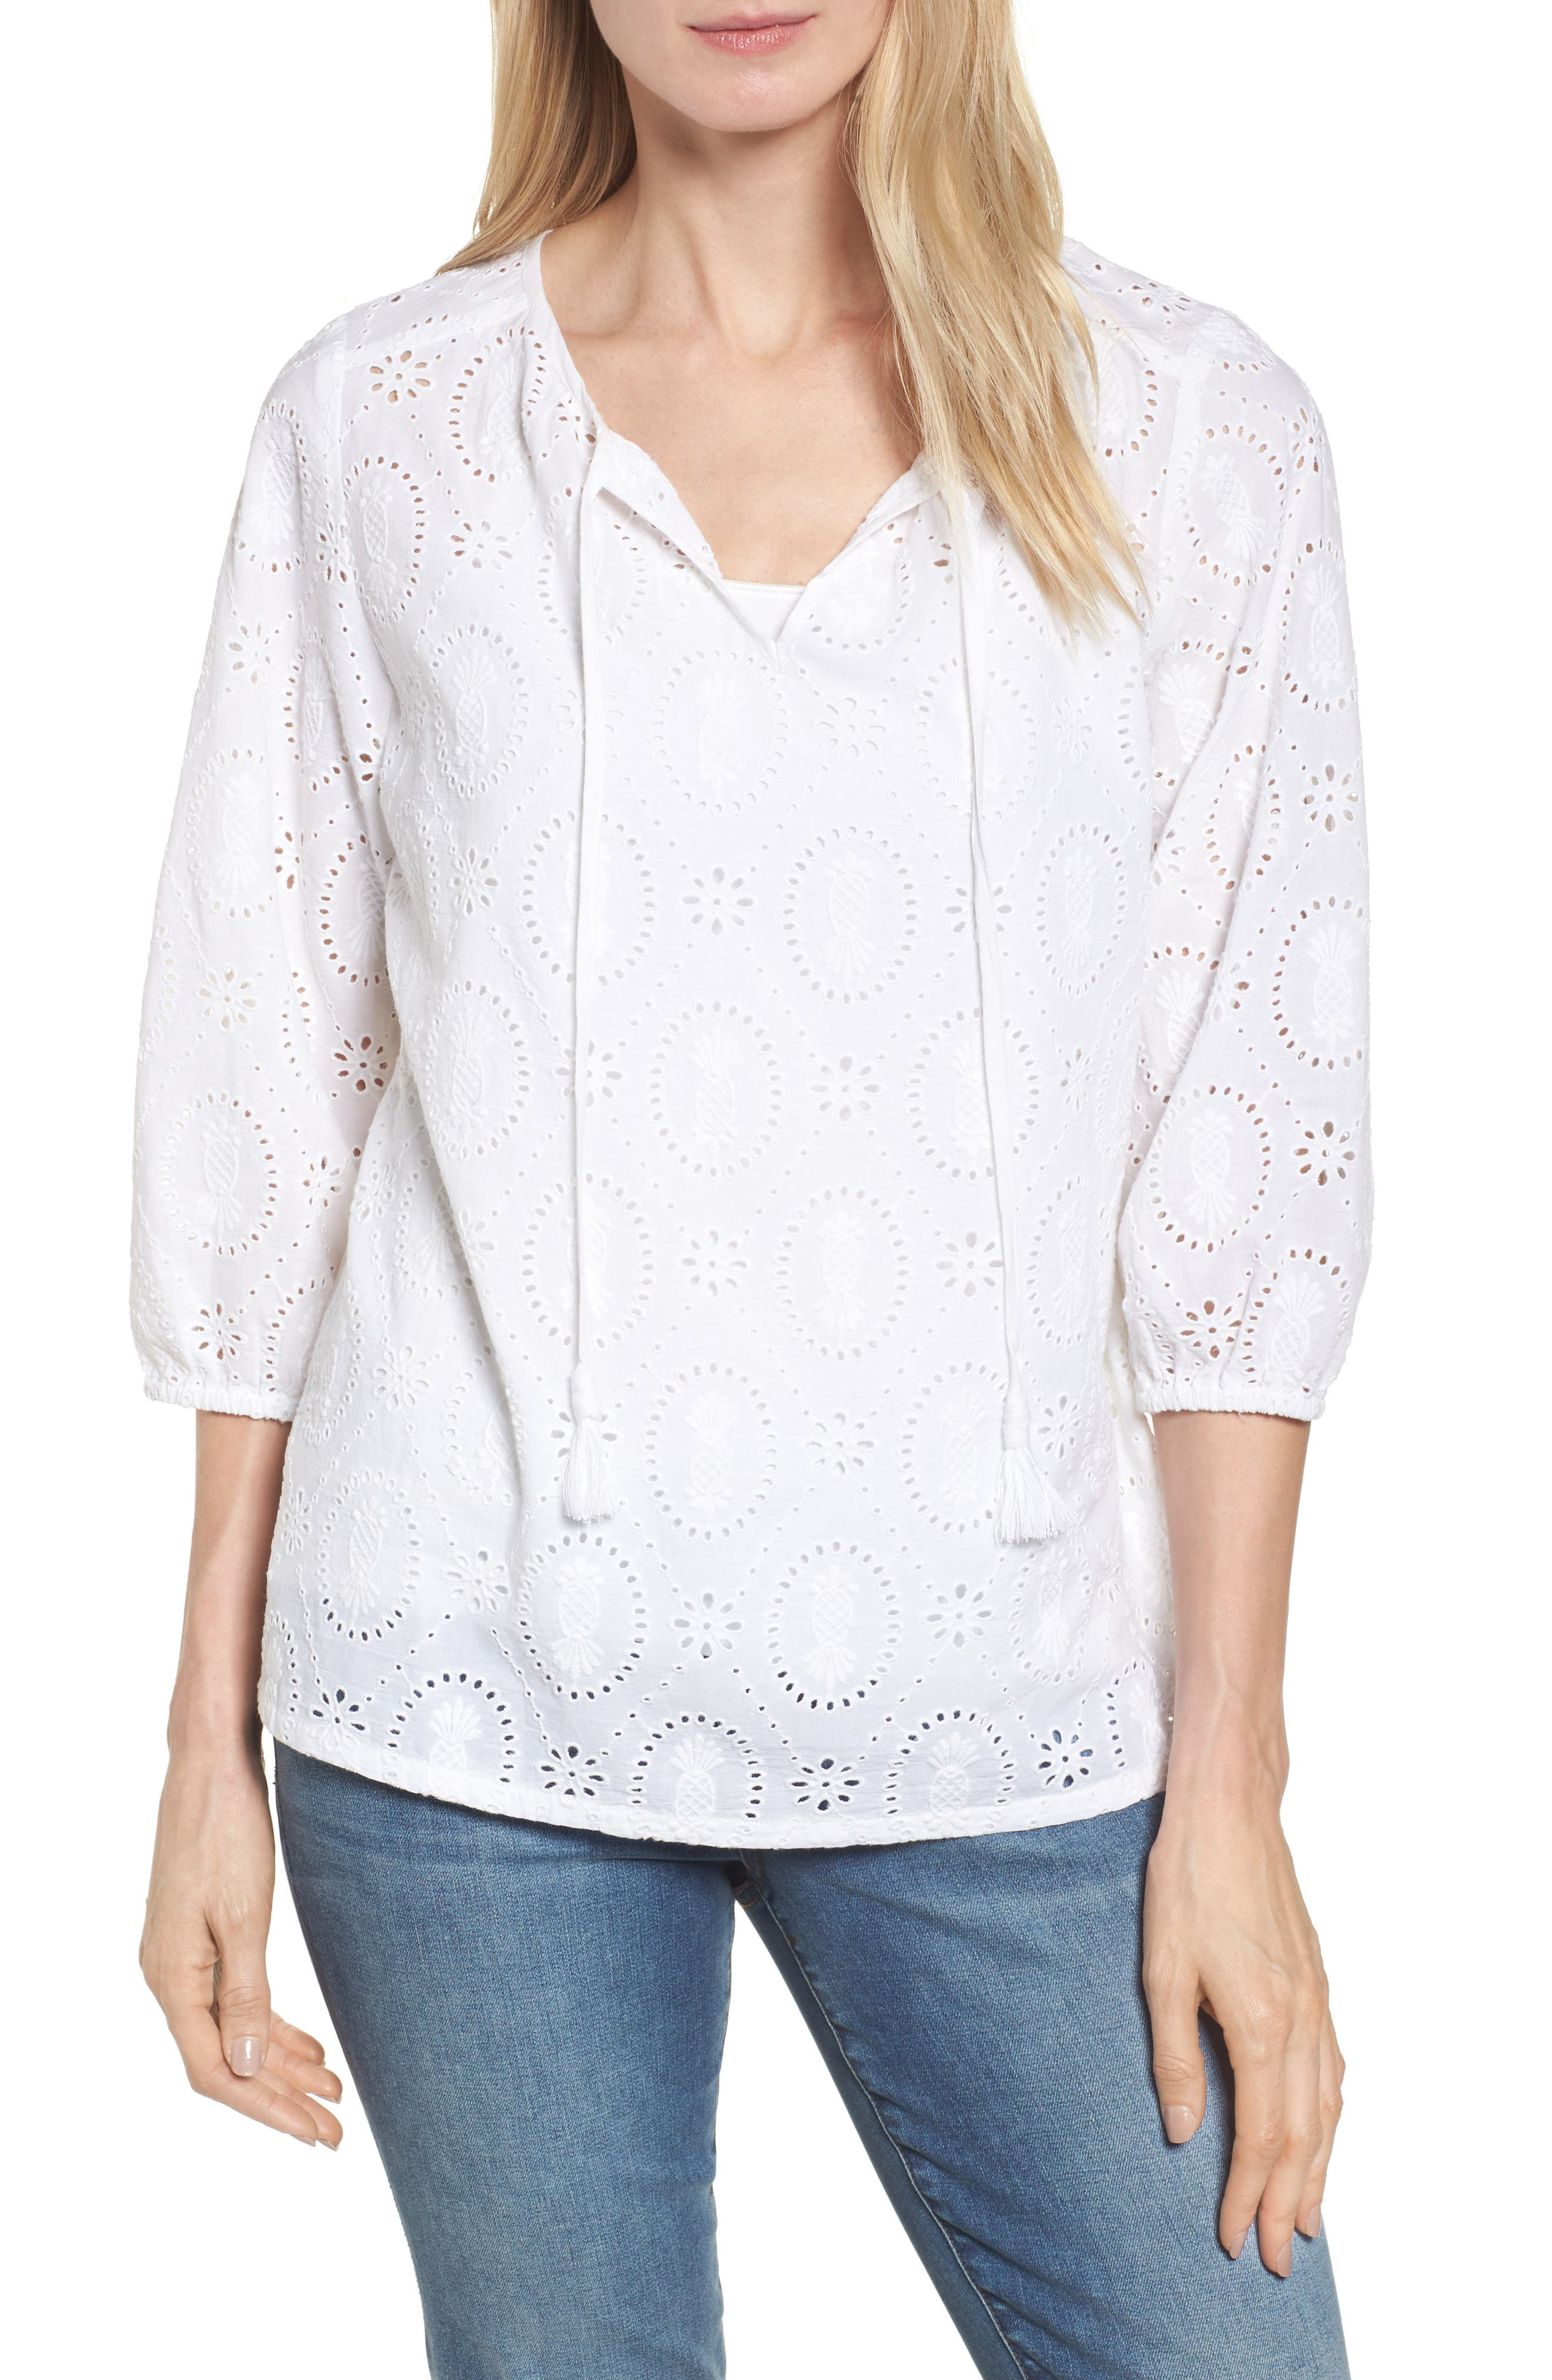 Pineapple Blossoms Tie Neck Blouse,                         Main,                         color, White